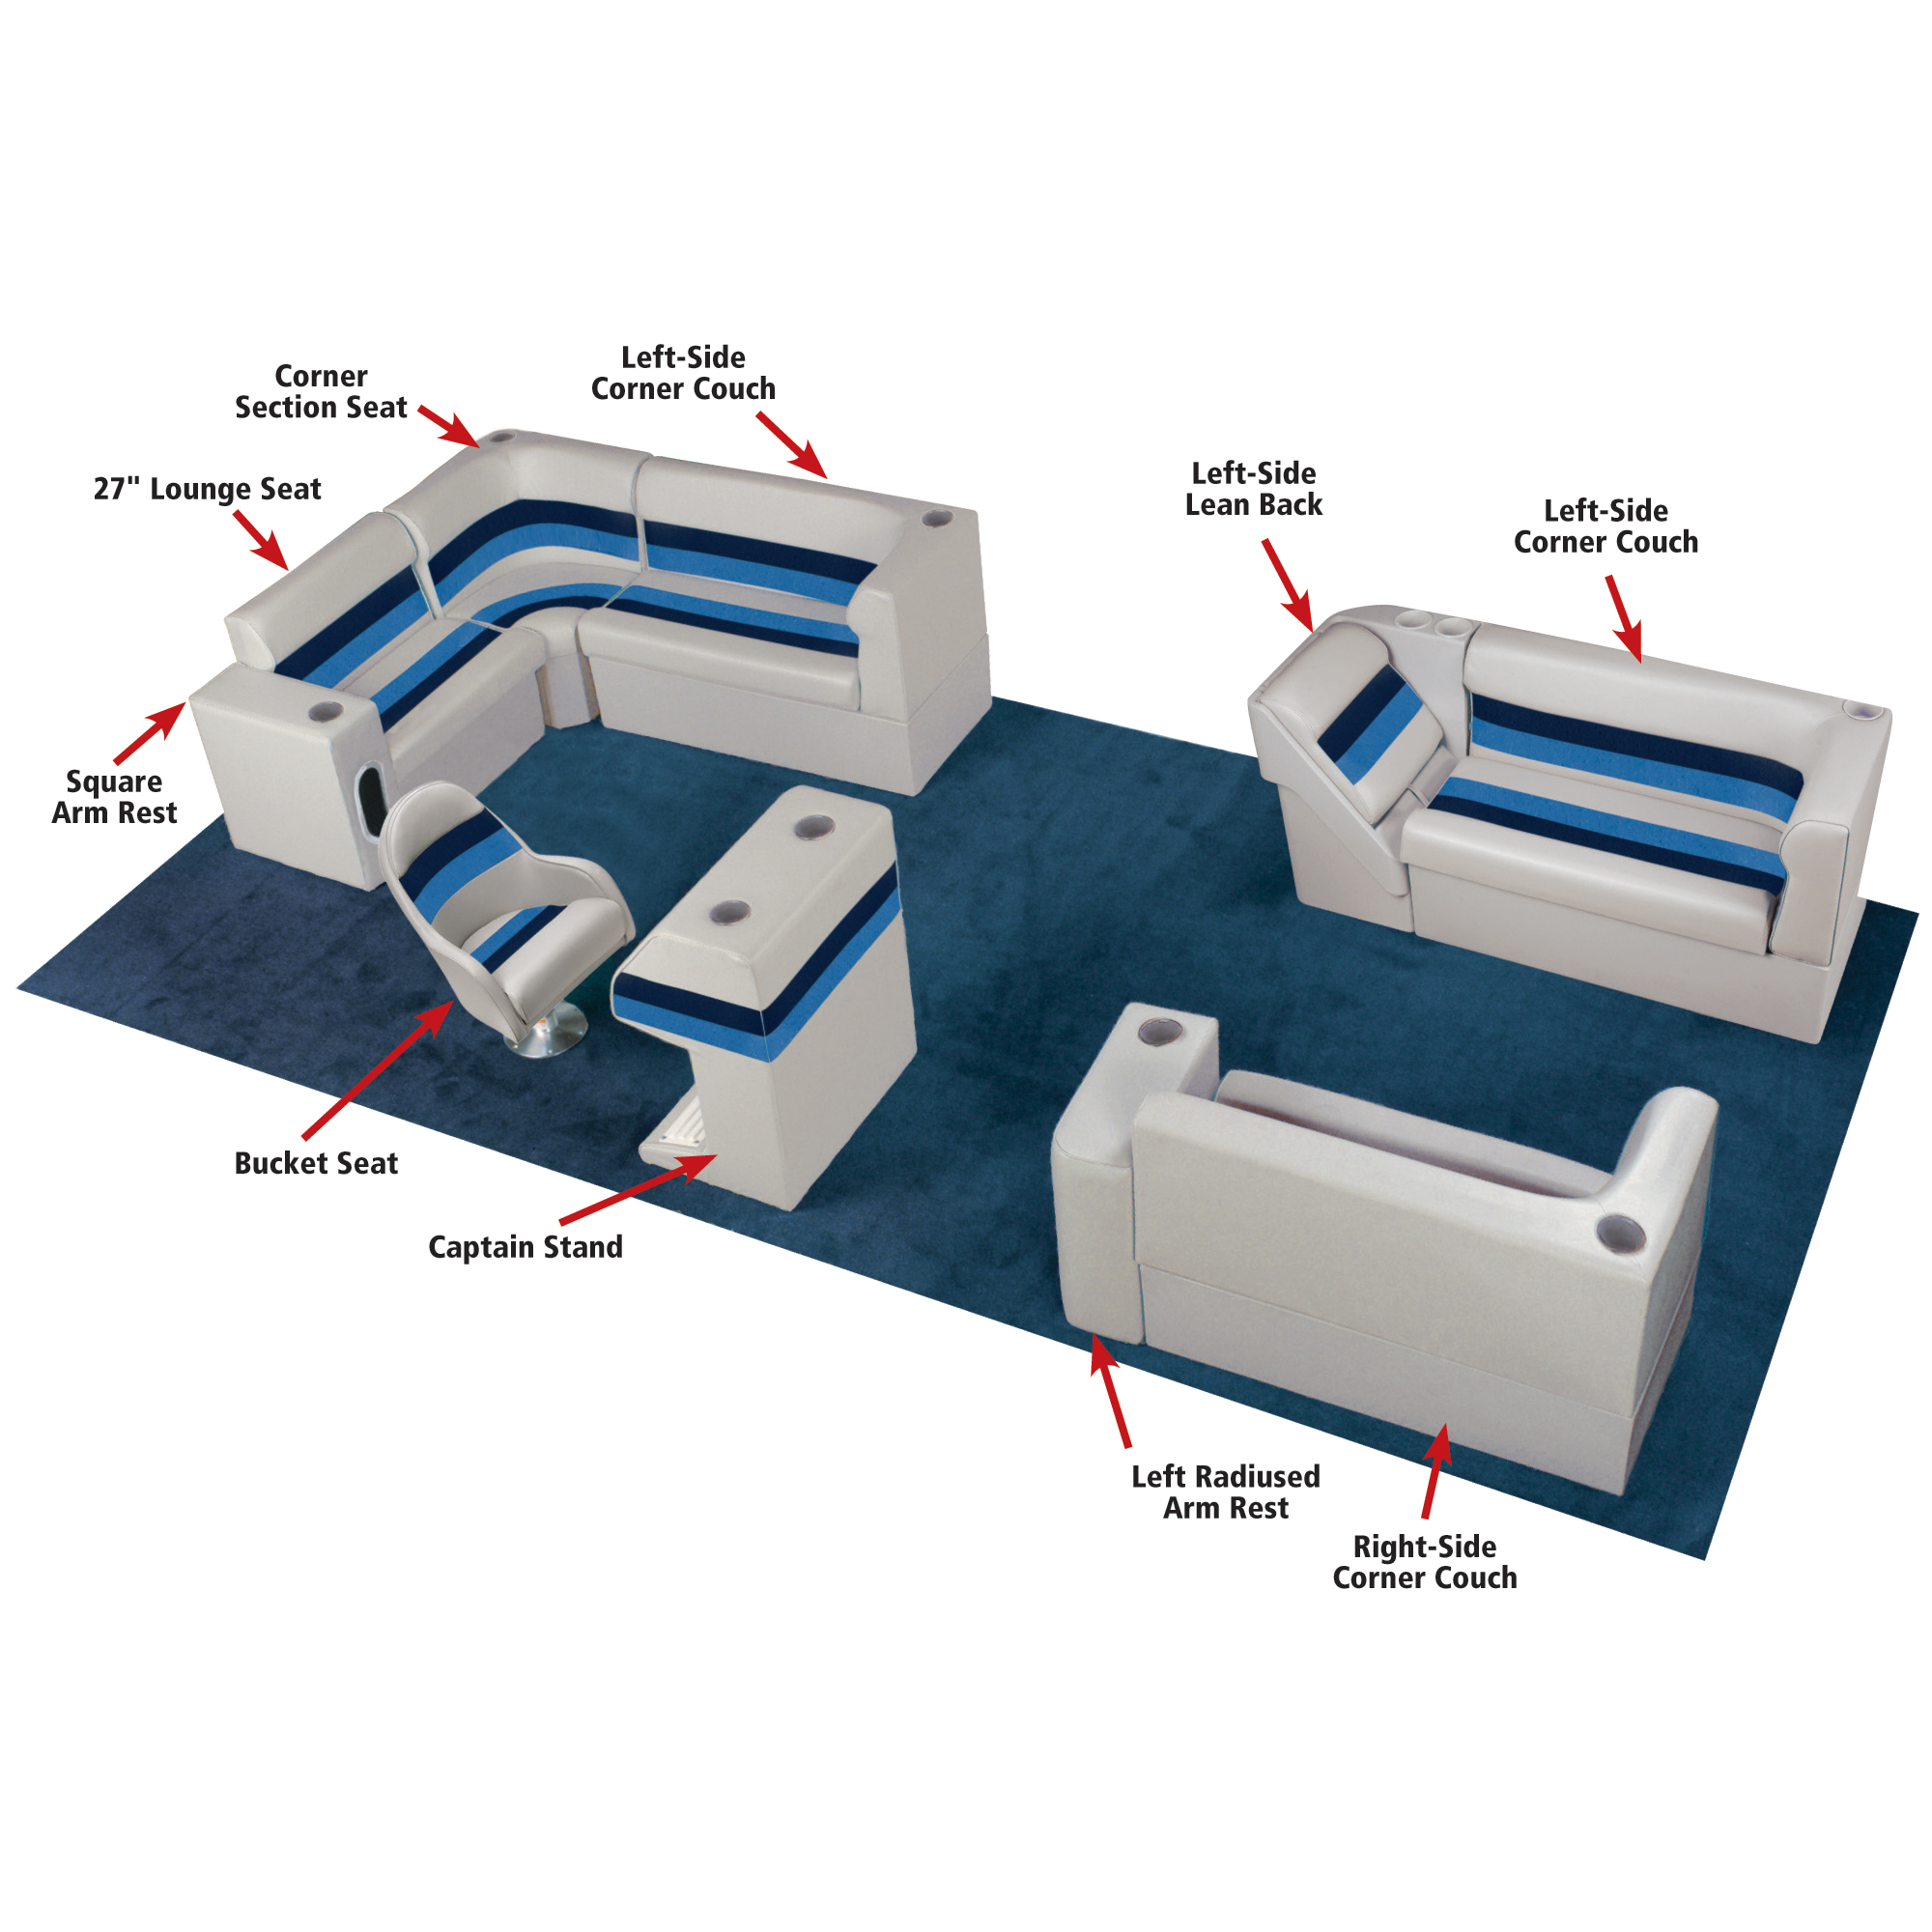 Toonmate Deluxe Pontoon Corner Couch w/Classic Base(no toe kick) Right Side Gray